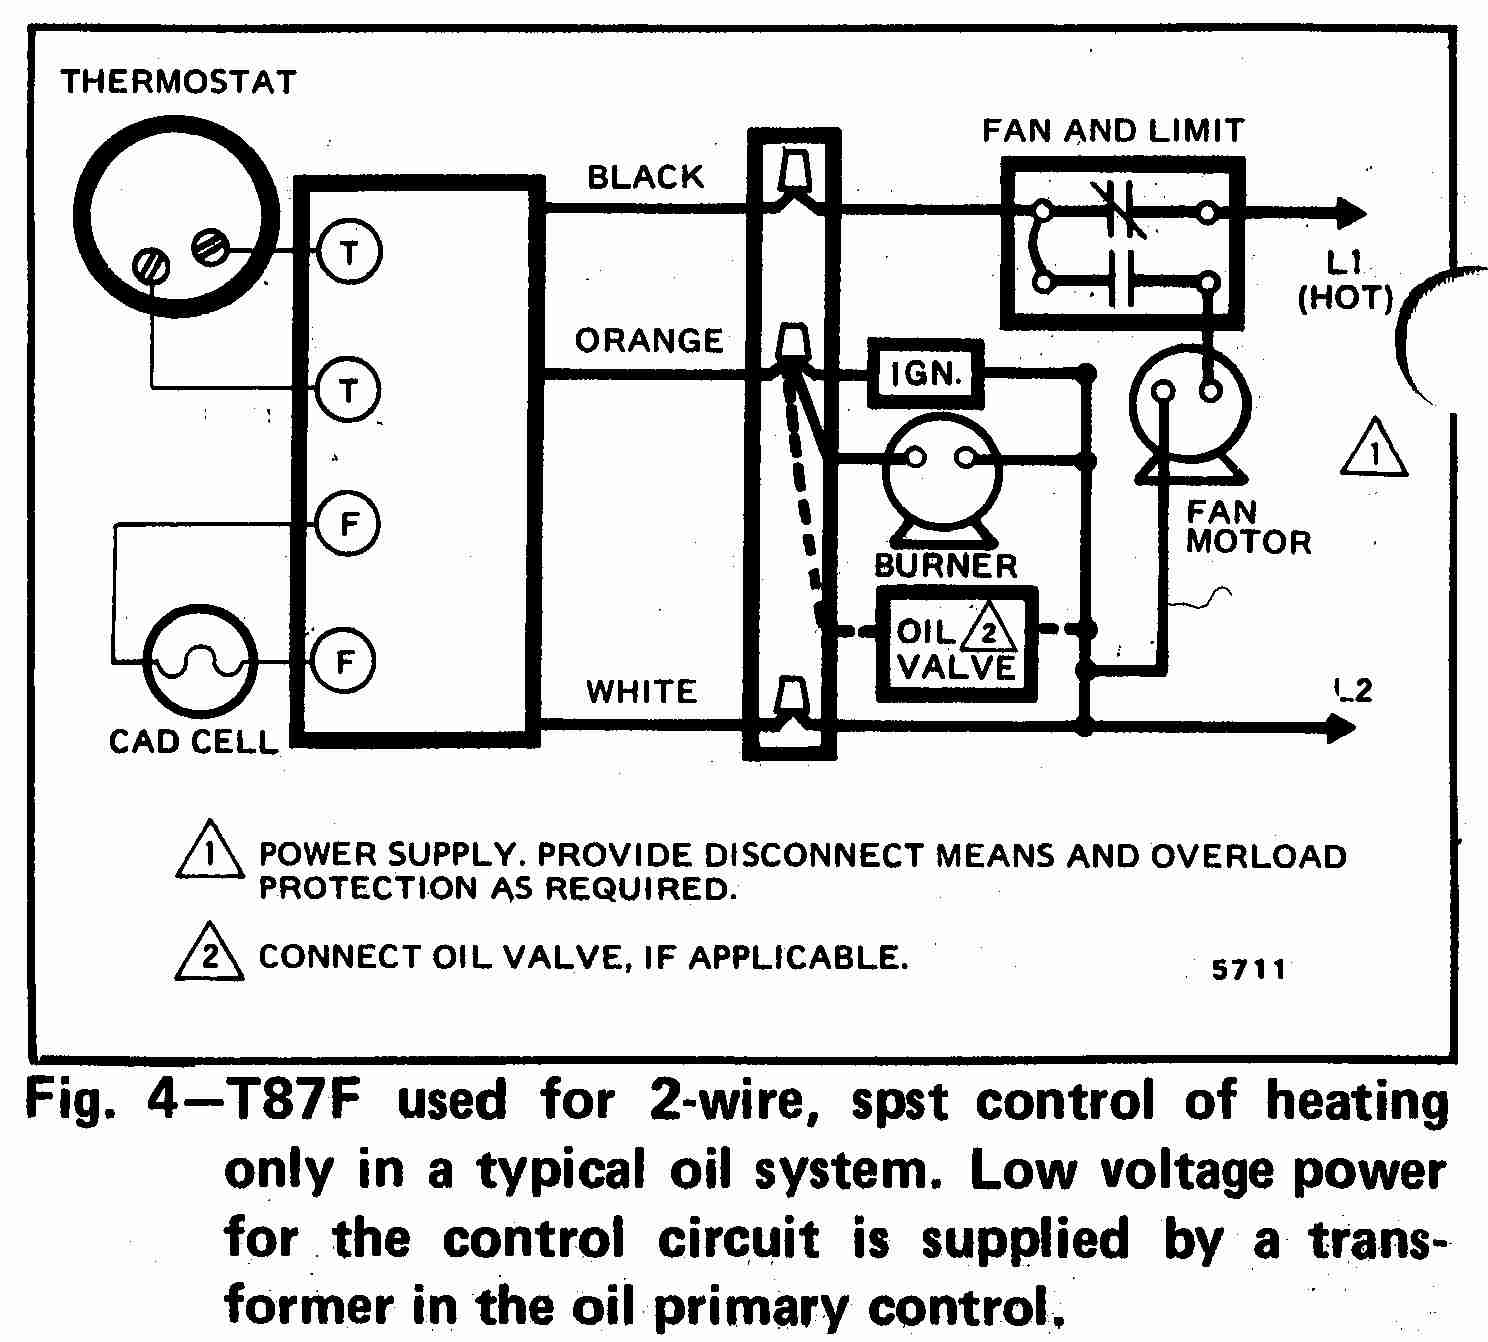 Room Thermostat Wiring Diagrams For Hvac Systems Oil Burner Wire Harness Oil Burner Oil Filter On Honeywell T87f Thermostat Wiring Diagram For 2 Wire, Spst Control Of Heating Only In